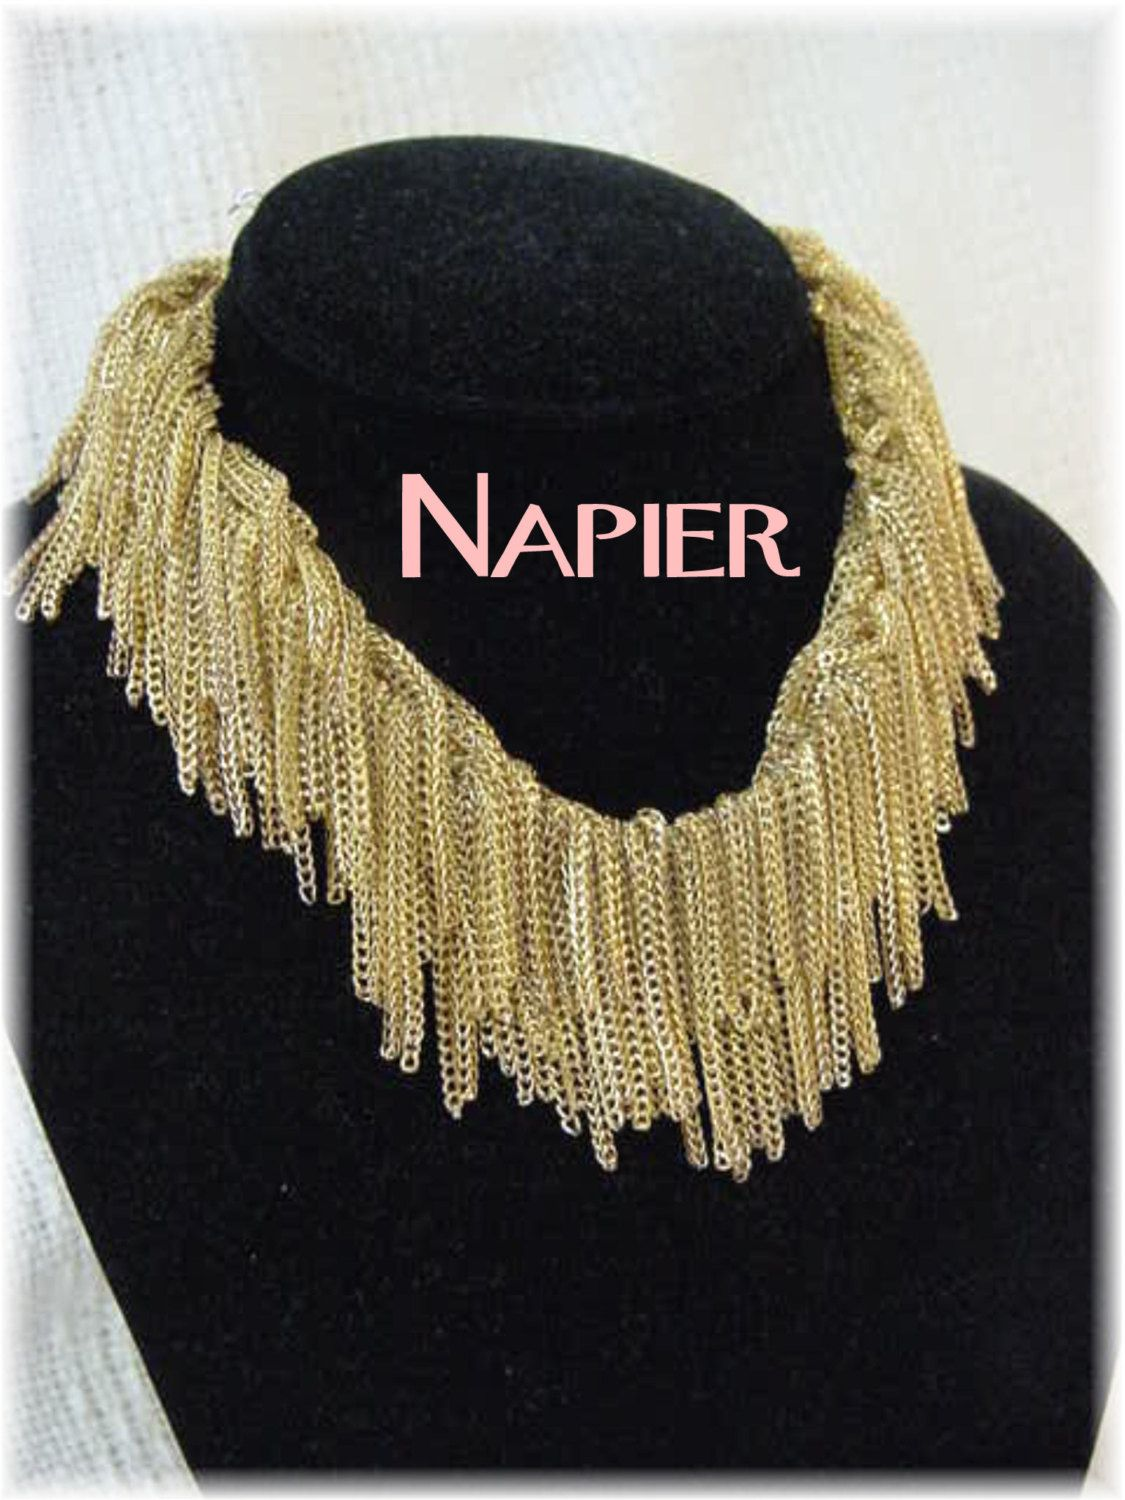 Napier - Foxtail Chain Fringed Lions Mane 1950s Necklace - Shaggy Fringe Statement Piece Jewellery- Estate Antique - FREE SHIPPING